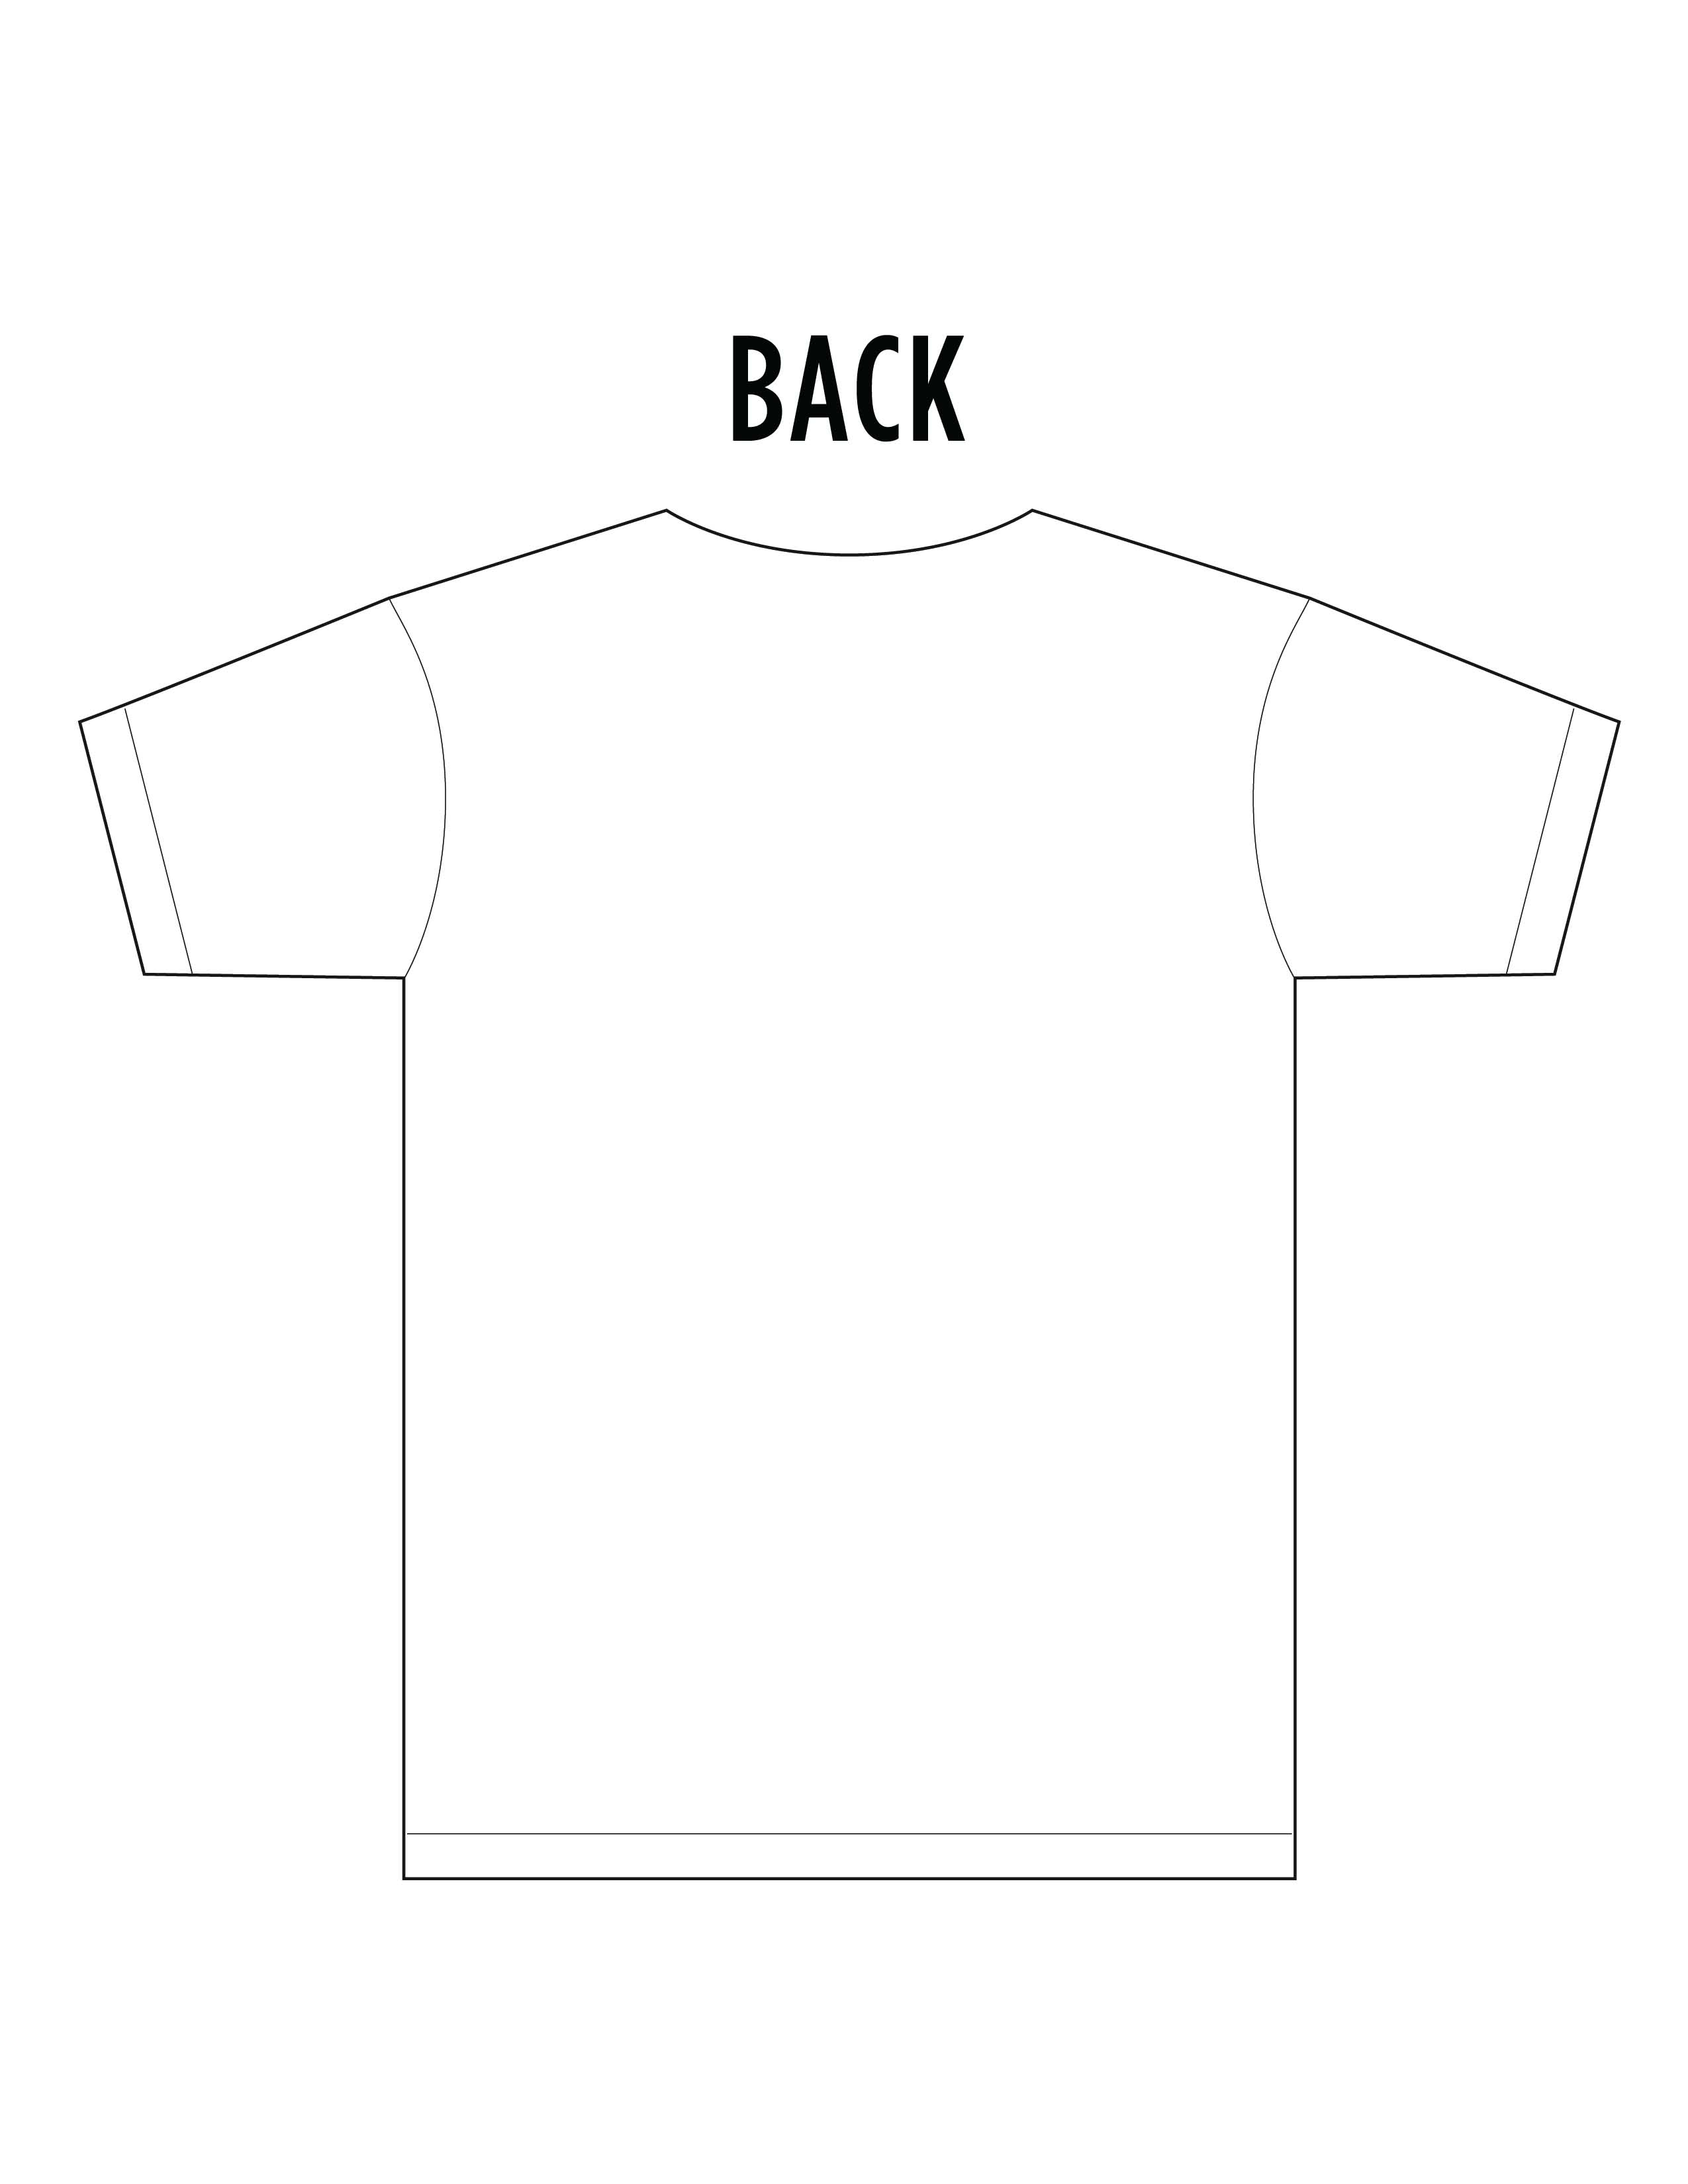 11 T-Shirt Template Front And Back Images